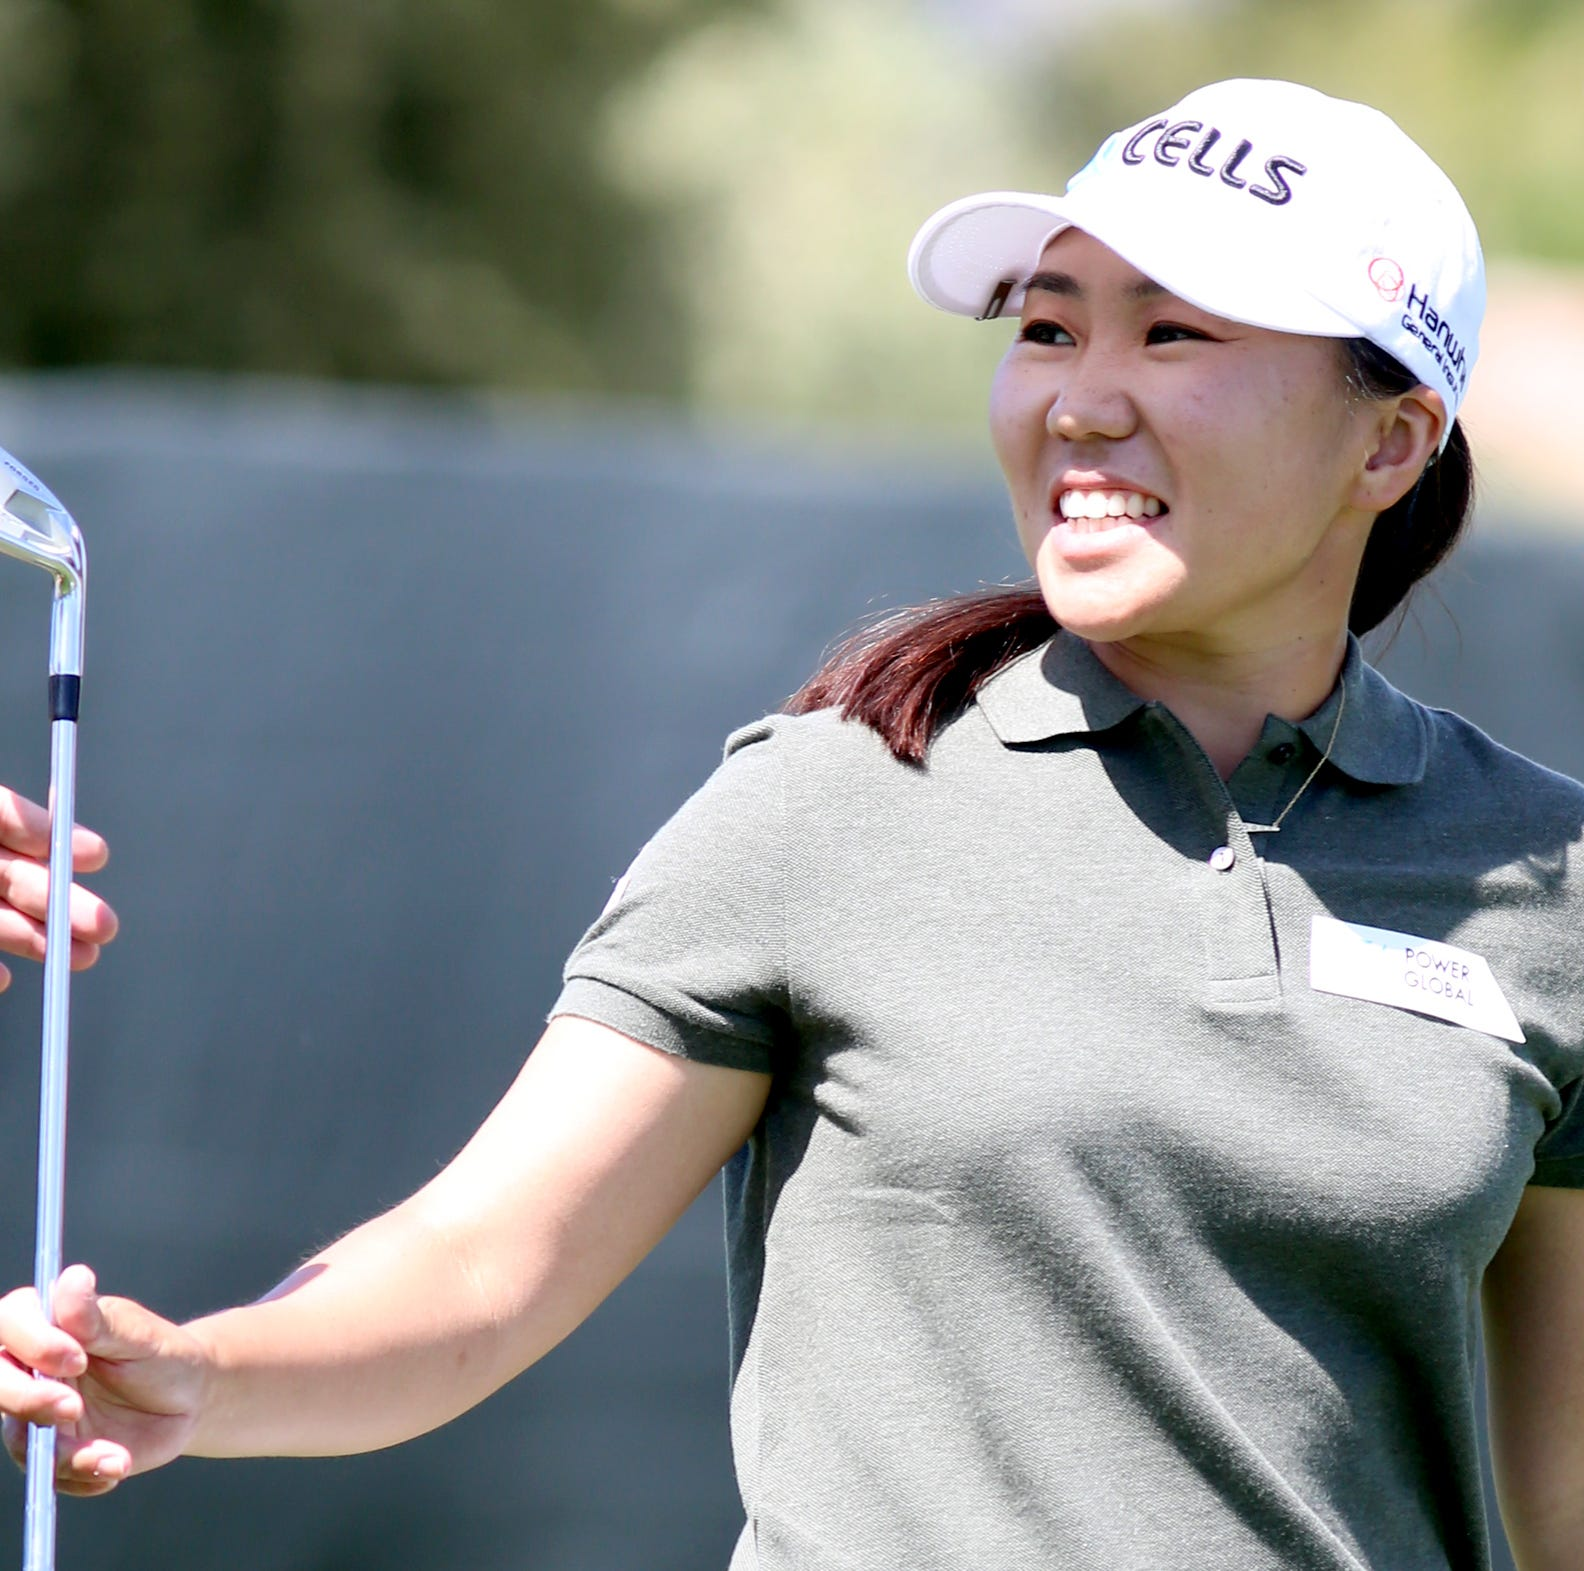 Seven years later, will In-Kyung Kim get her ANA Inspiration victory?